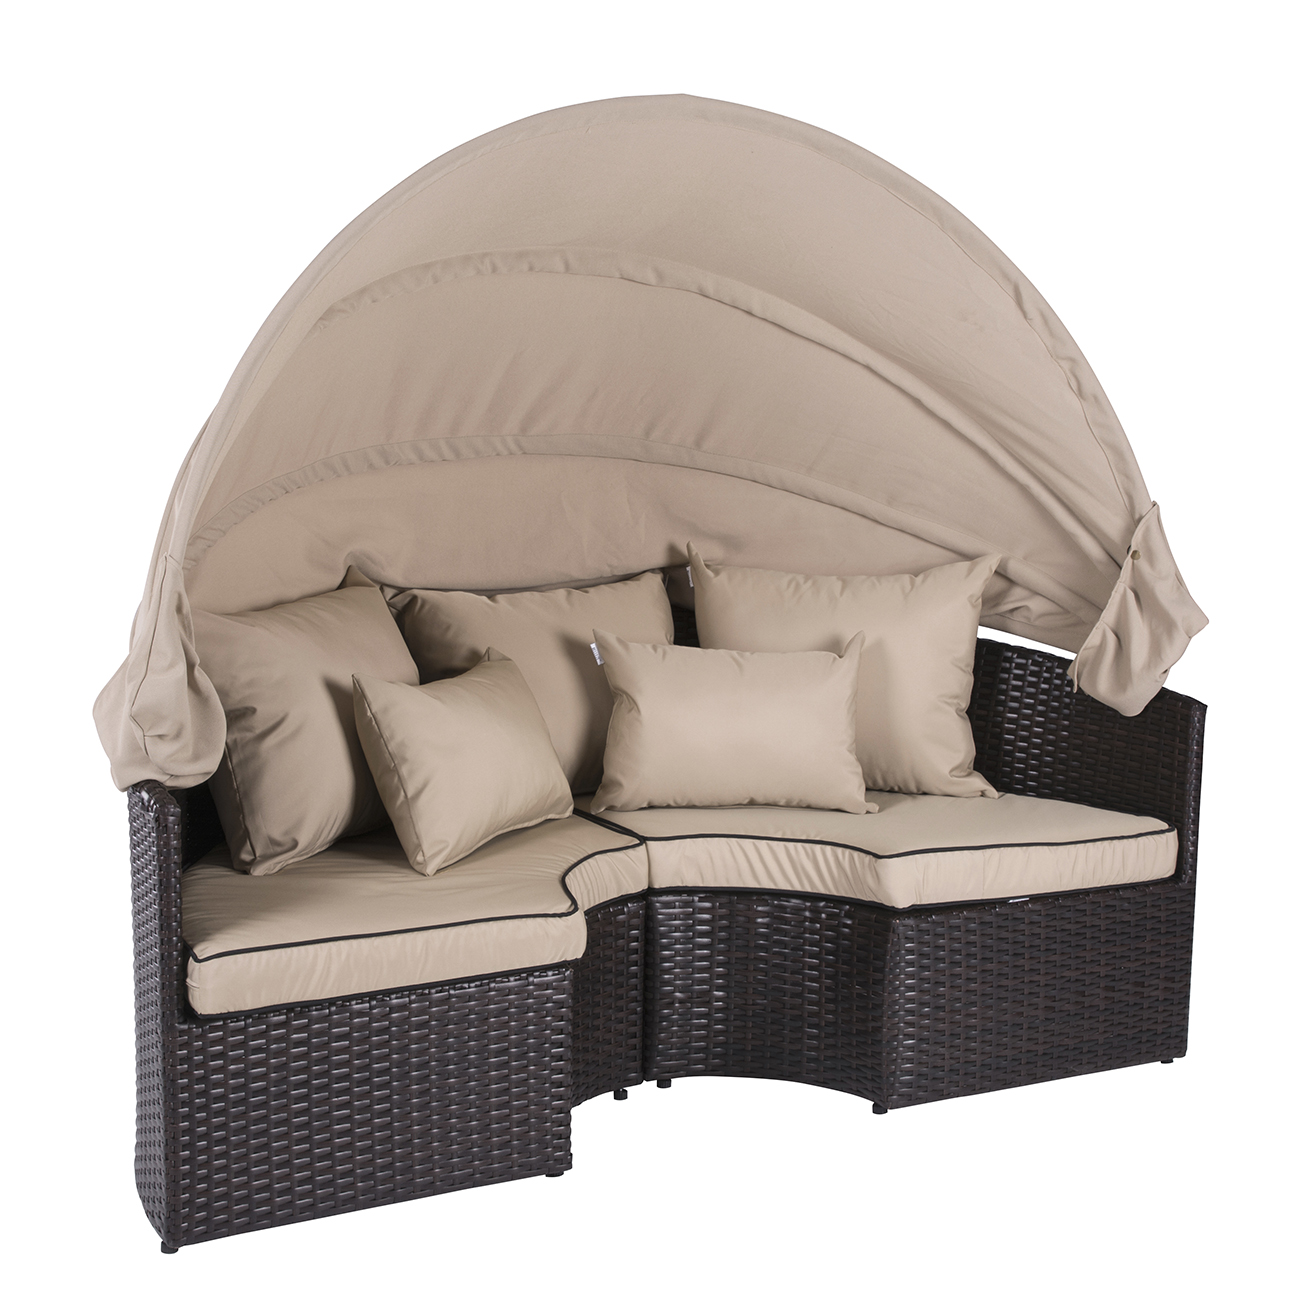 canopy daybed outdoor wicker sun sofa lounge sofas blue patio 2 in 1 rattan set round sunbed w